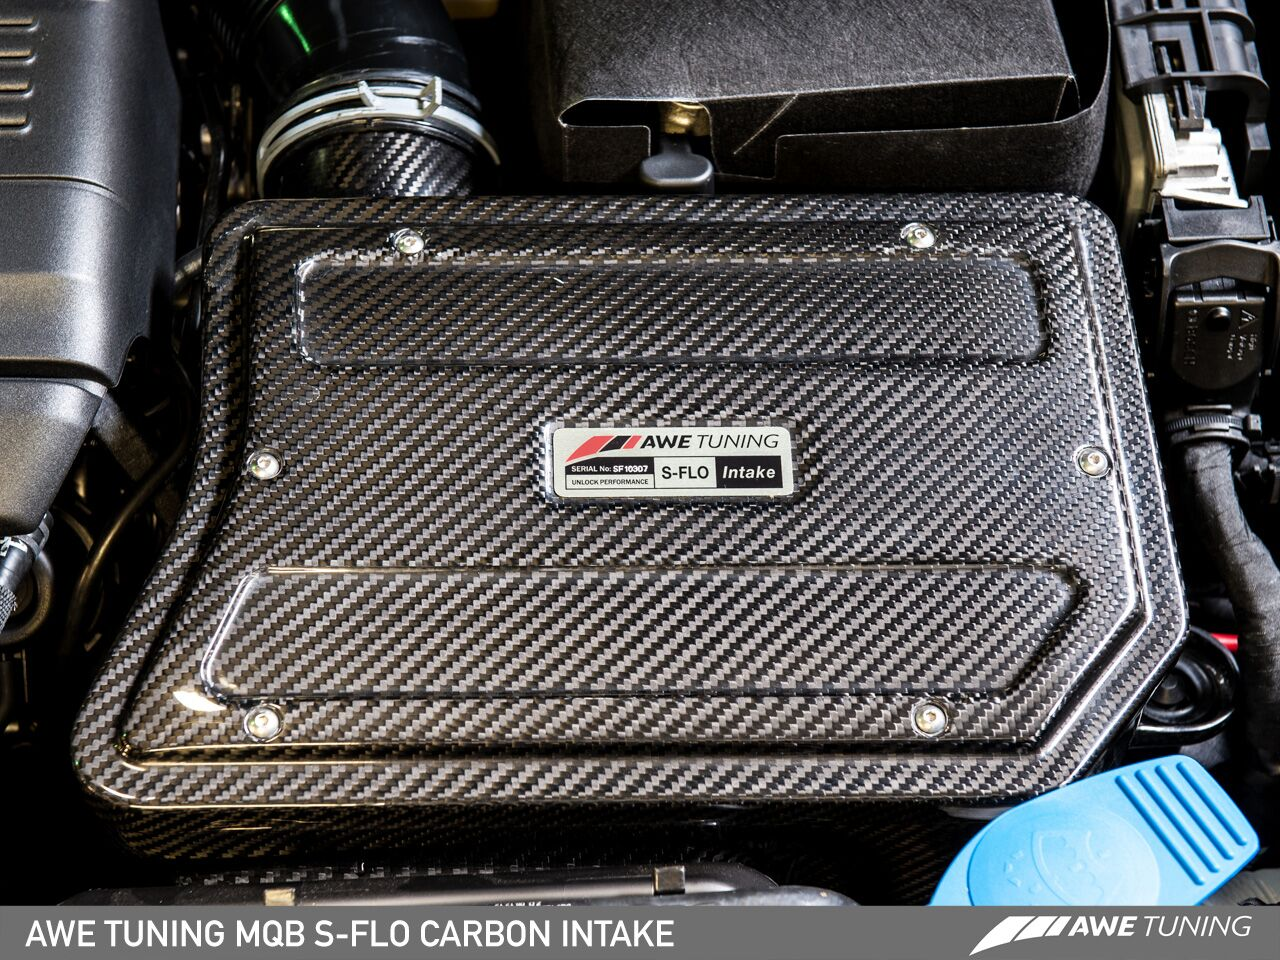 MQB Sflo carbon 1 AWE Now Able To Supply Advanced Carbon Fibre S FLO Intake Kit For MQB 1.8/2.0TFSI